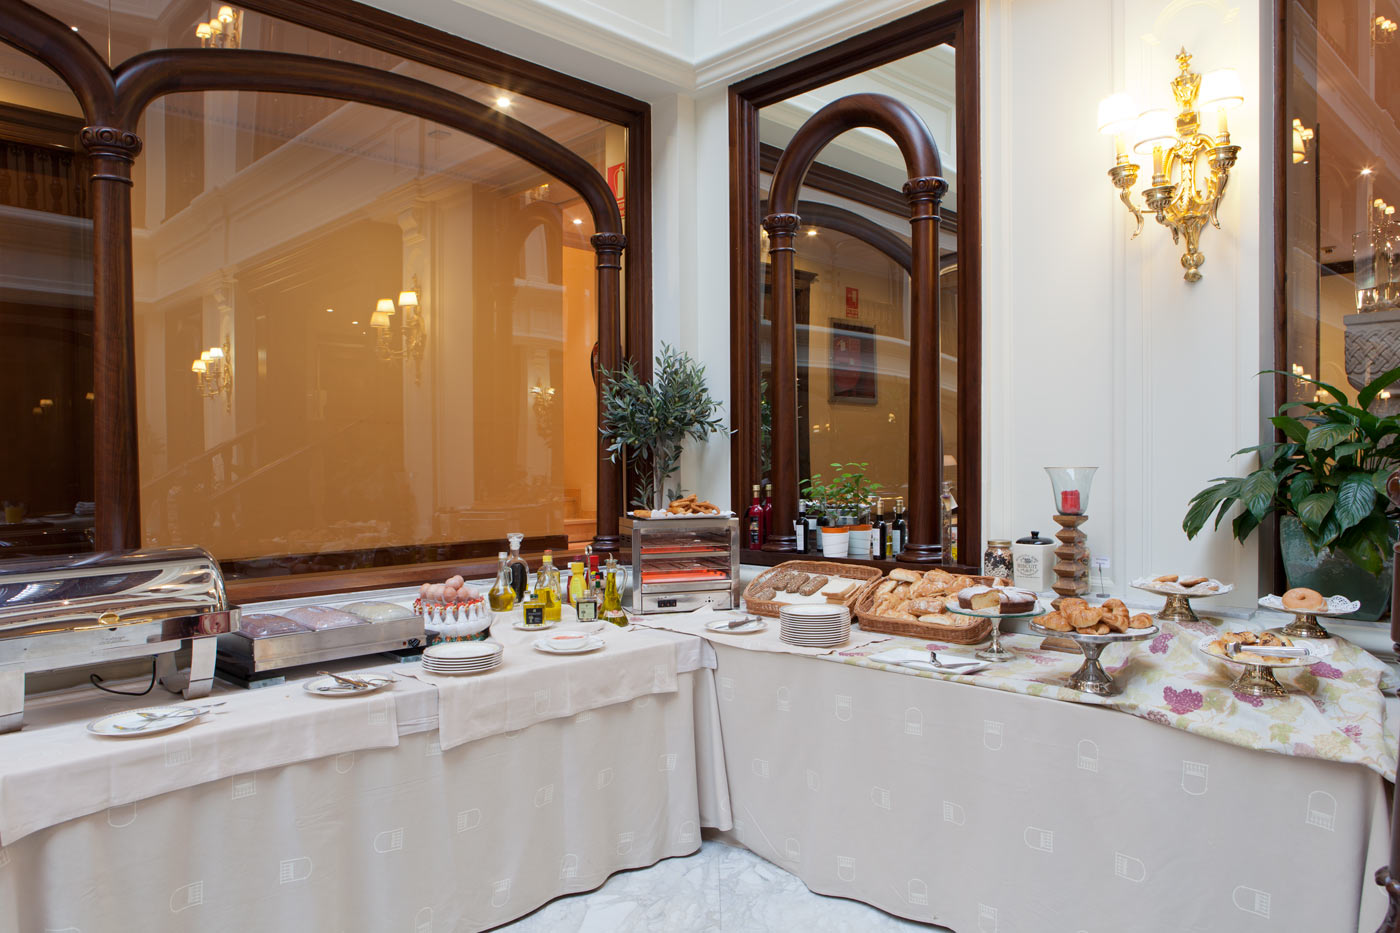 Hotel Don Pio - Breakfast Hall